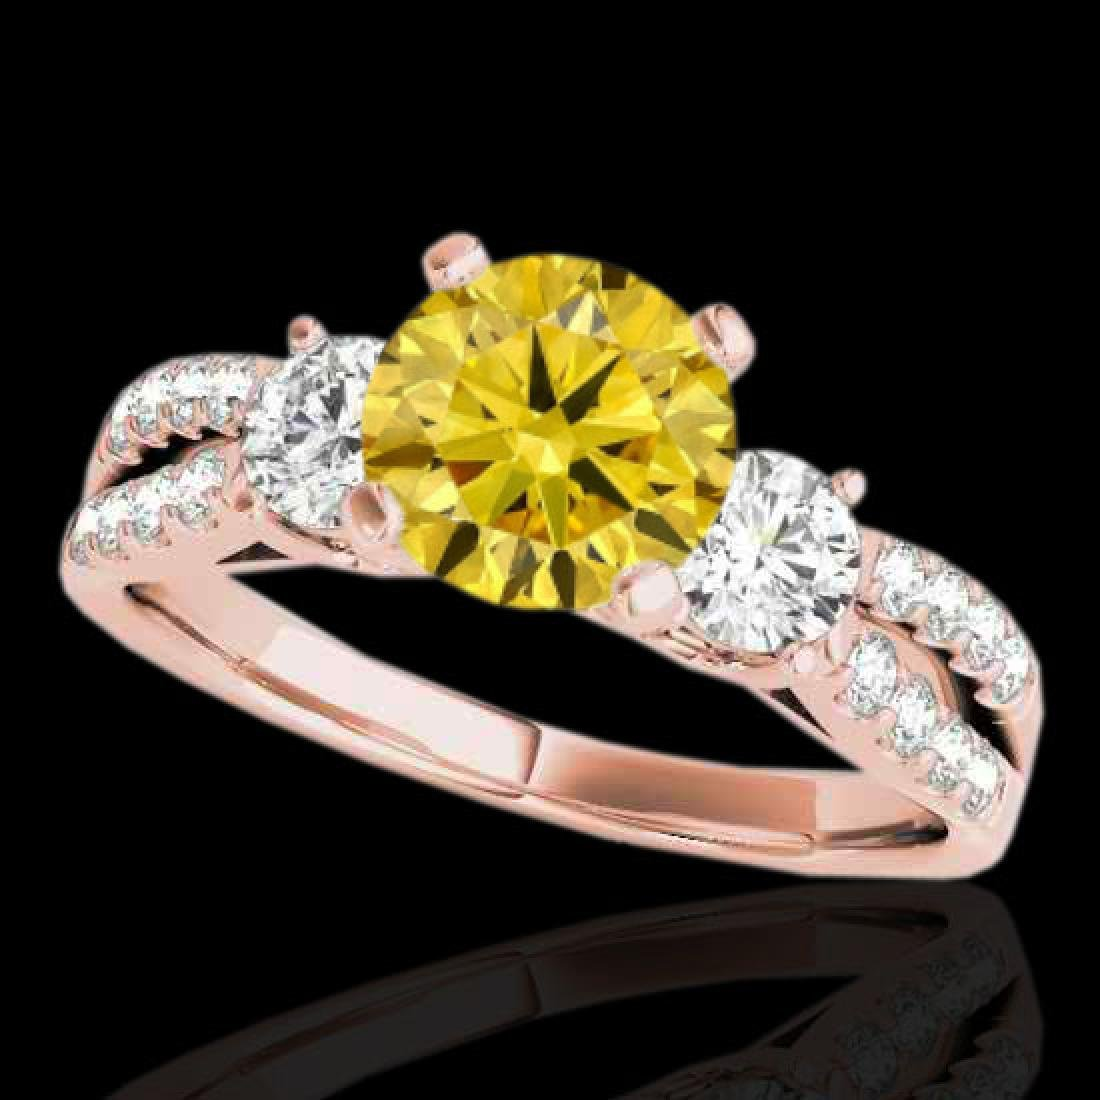 1.5 CTW Certified Si Intense Yellow Diamond 3 Stone